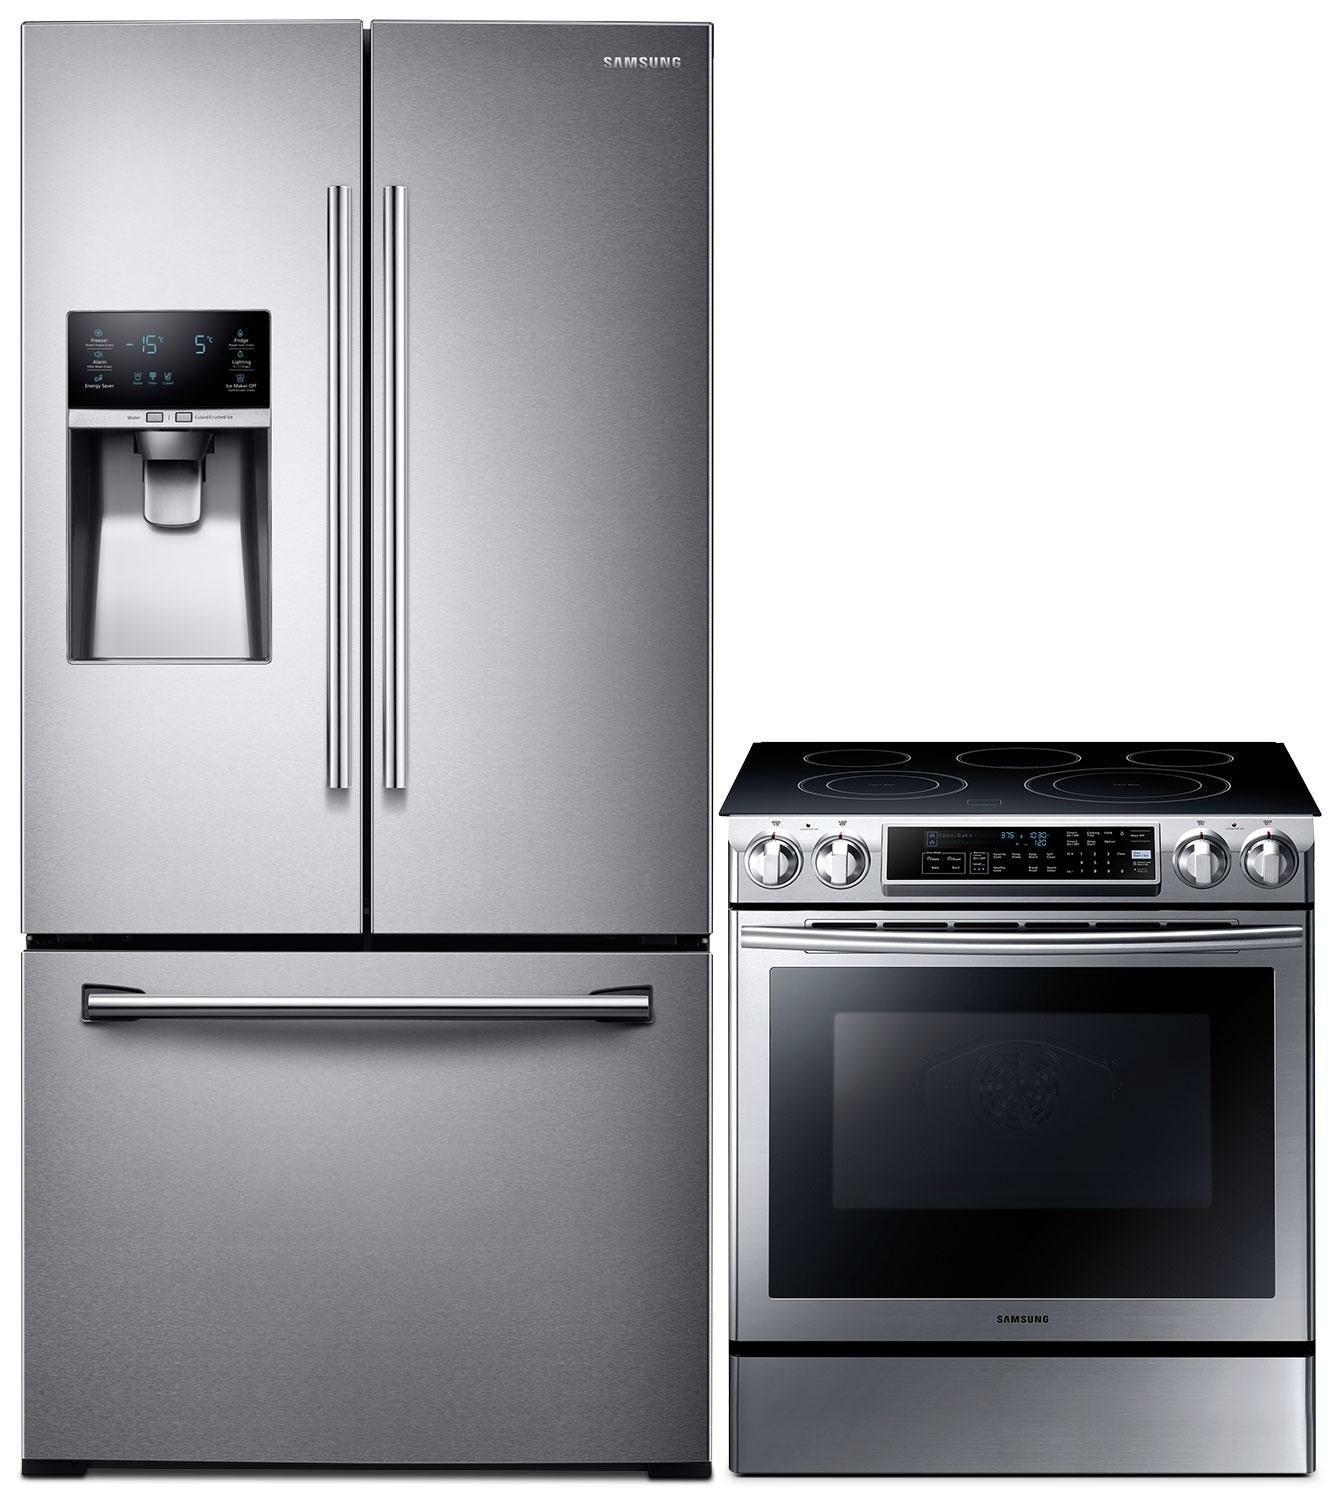 Cooking Products - Samsung 25.5 Cu. Ft. Refrigerator and 5.8 Cu Ft. Electric Range